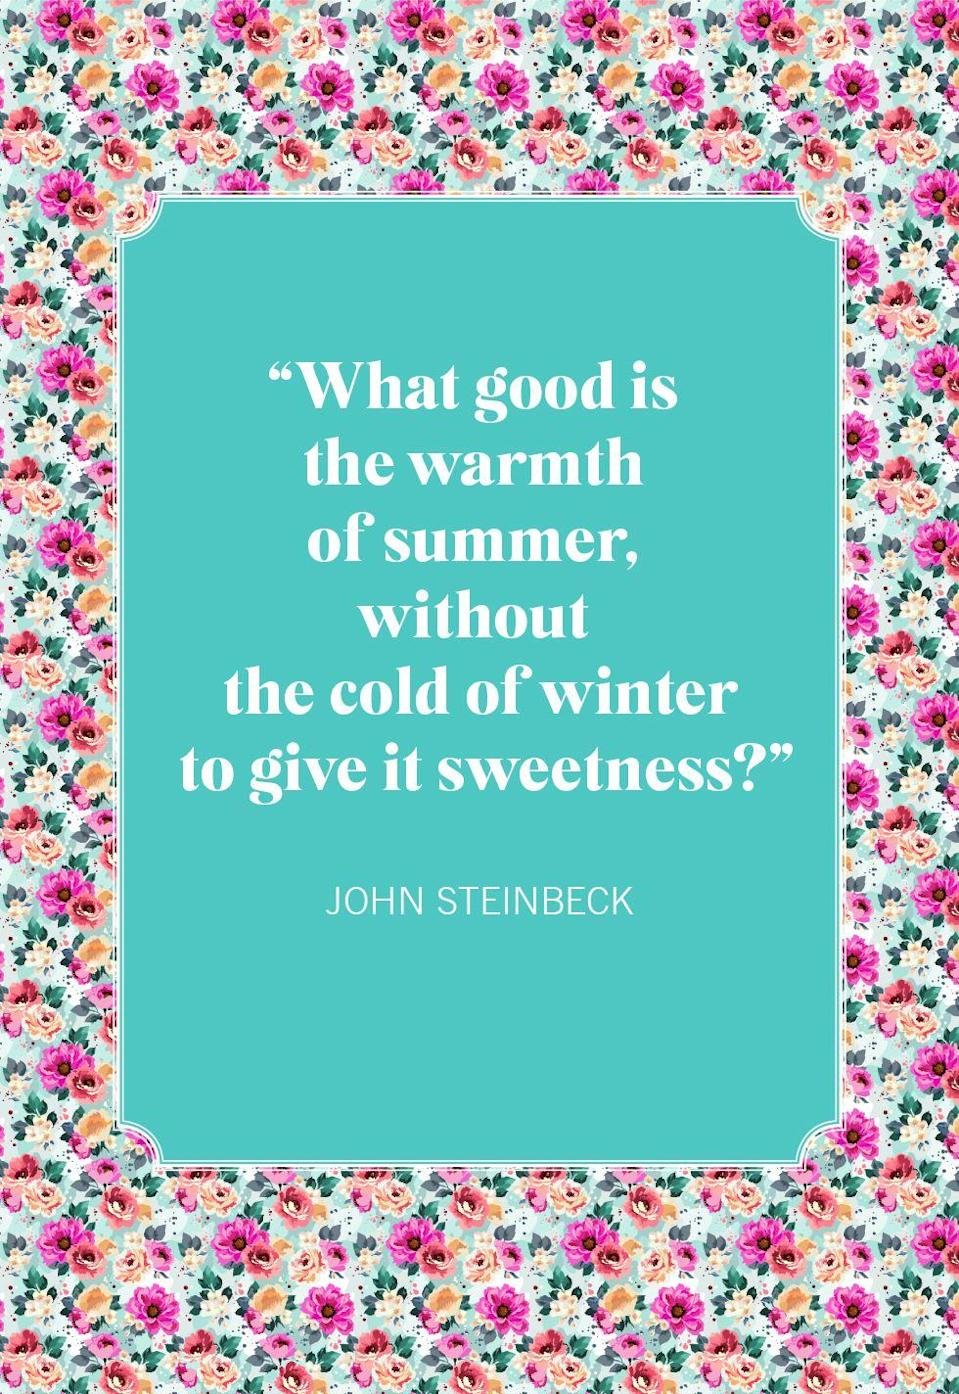 """<p>""""What good is the warmth of summer, without the cold of winter to give it sweetness?""""</p>"""